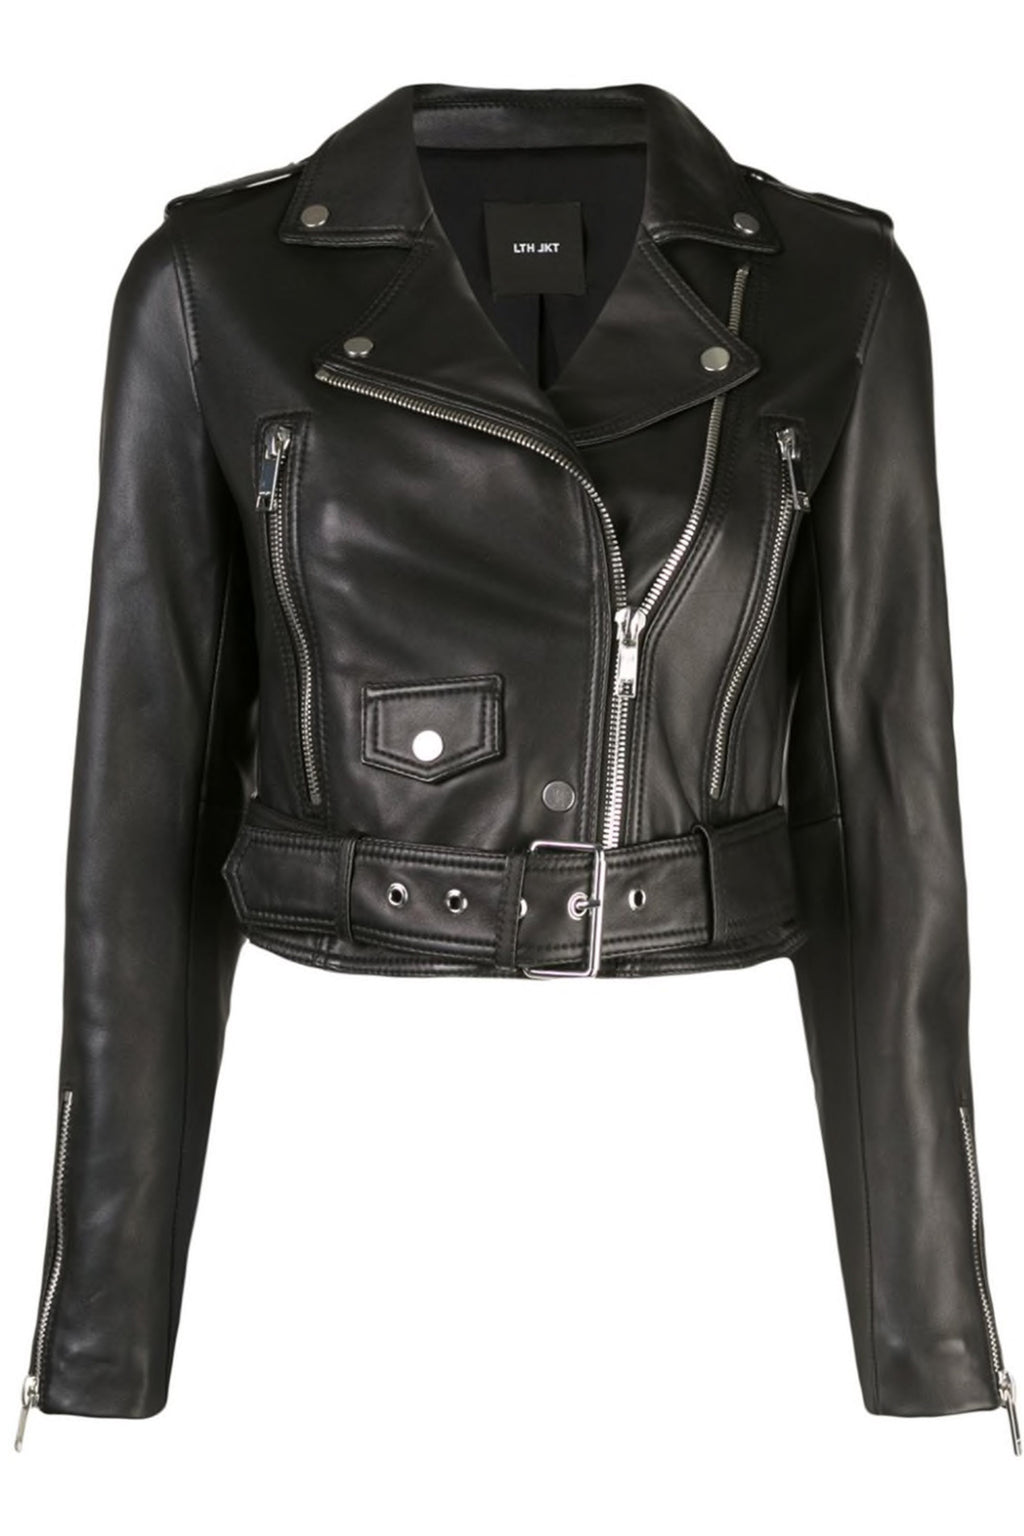 LTH JKT | Mya Cropped Biker Jacket - Black